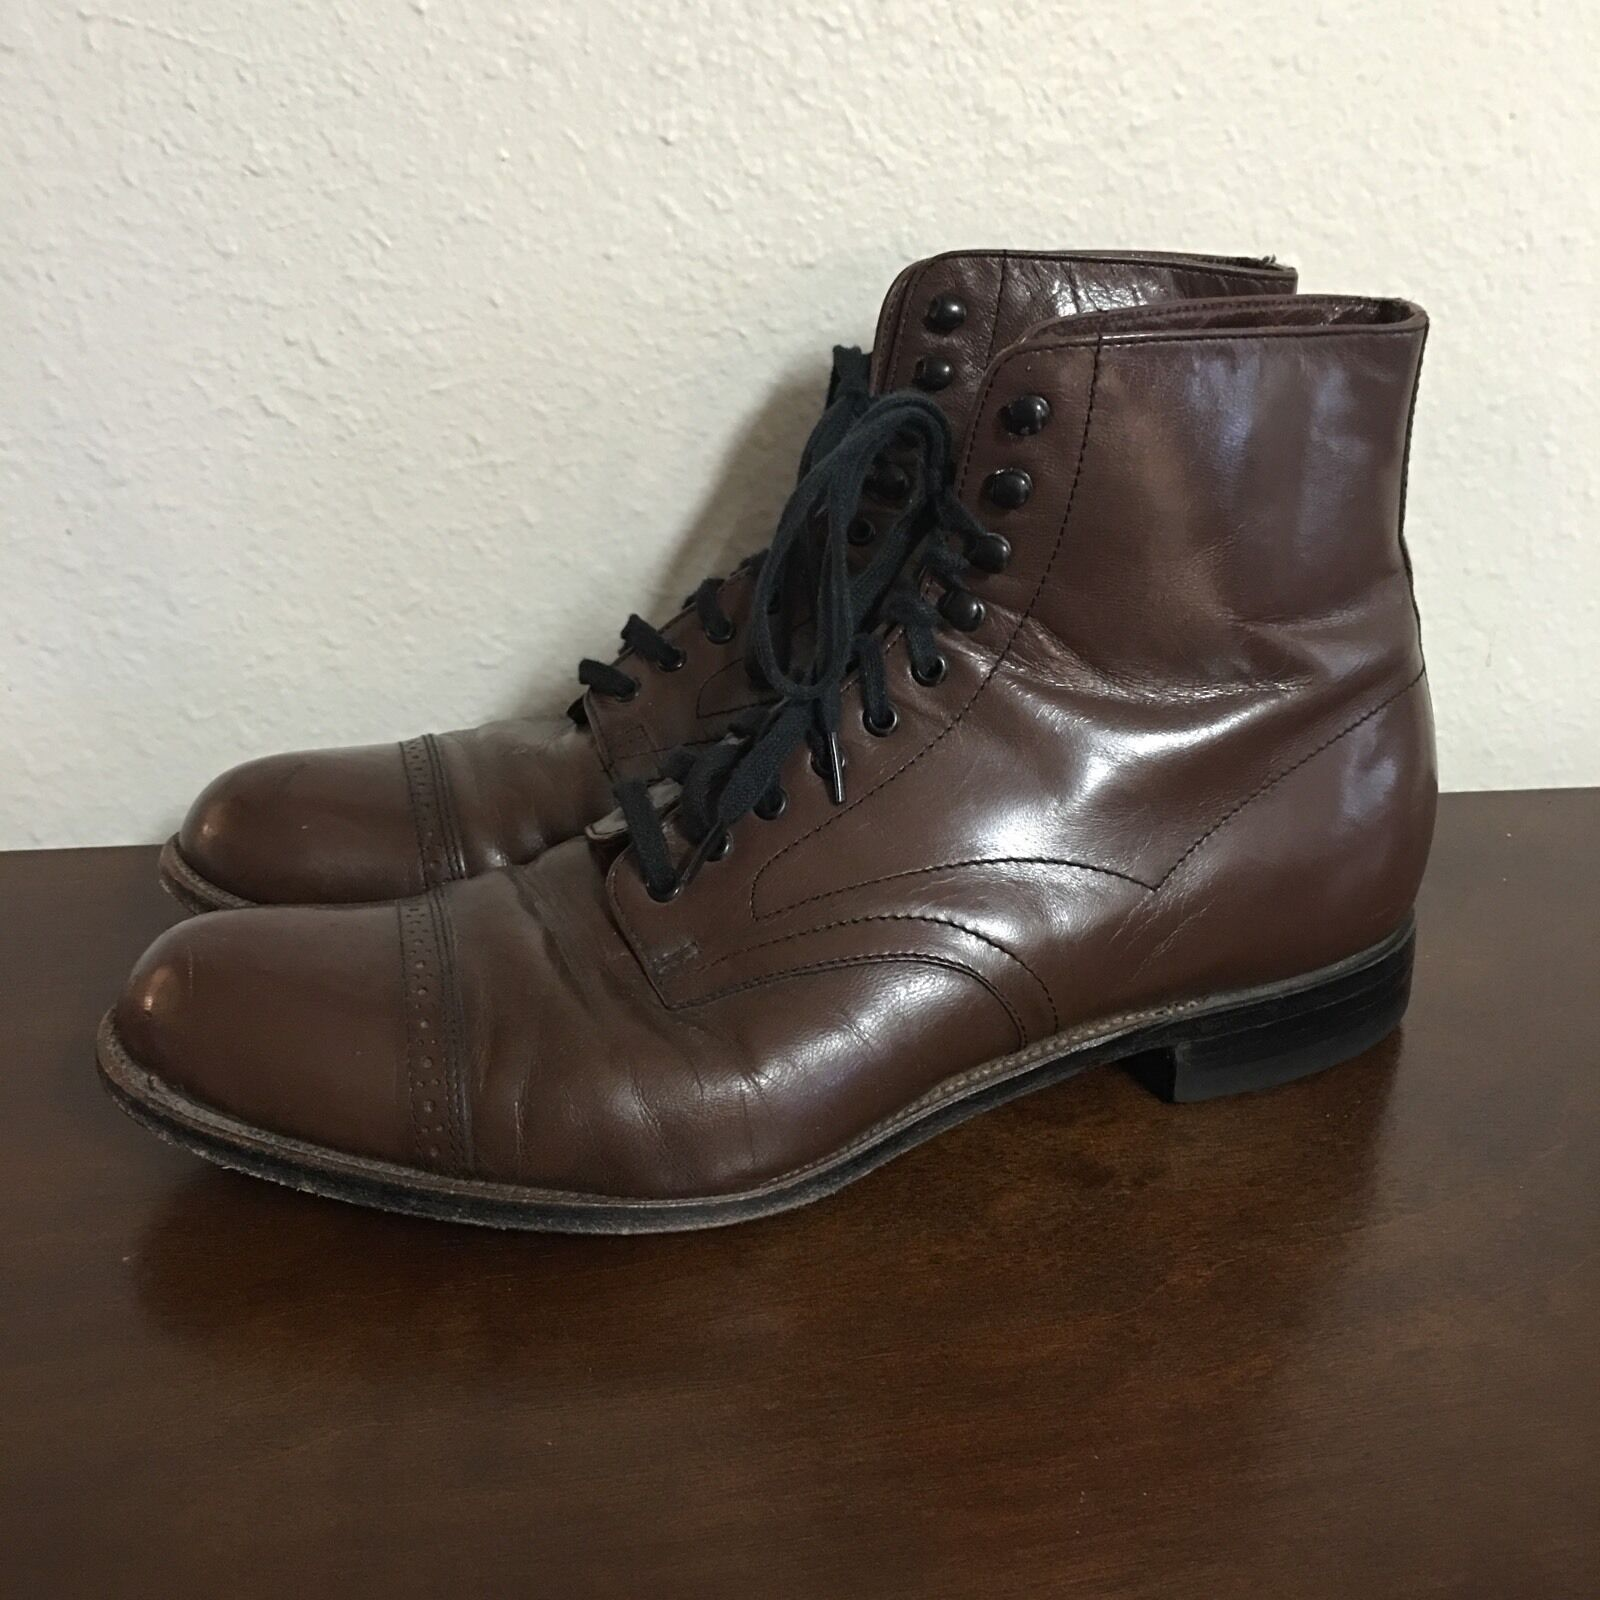 Stacey Adams Men's Boots Chocolate Brown Steampunk Size 8.5 US